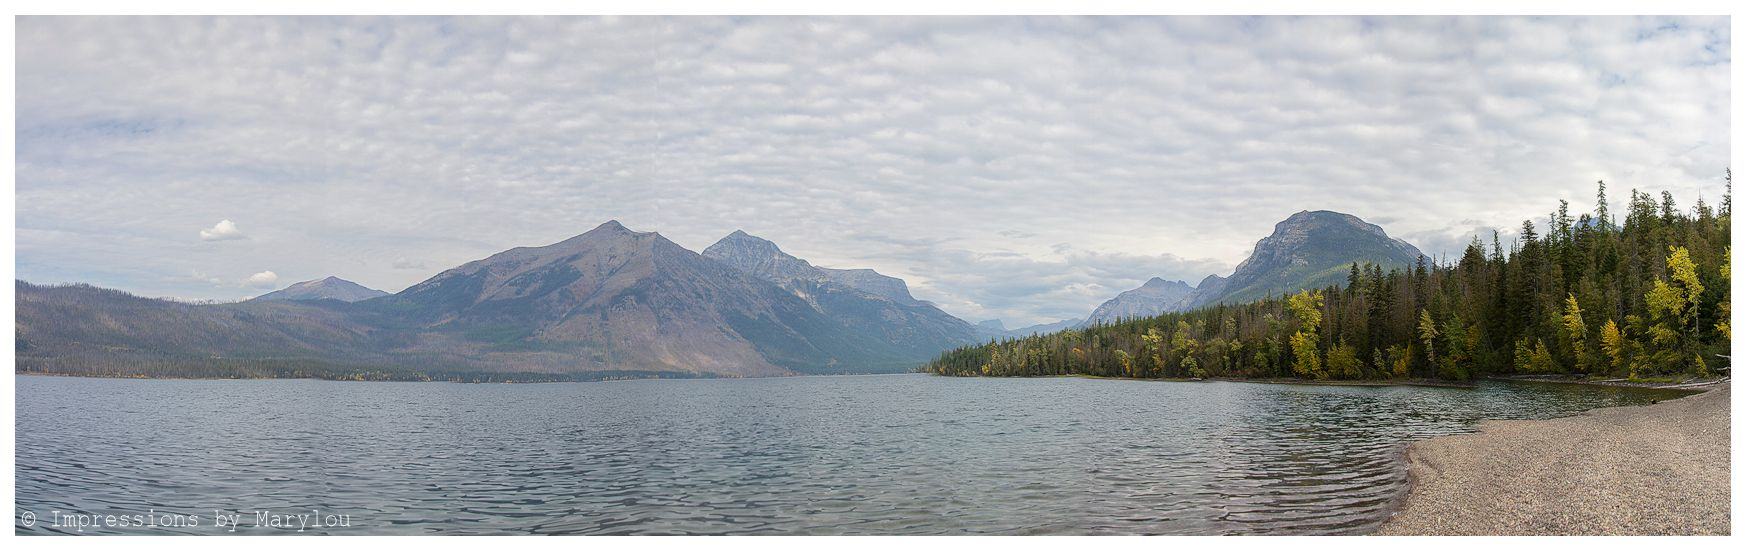 Lake McDonald Pano b